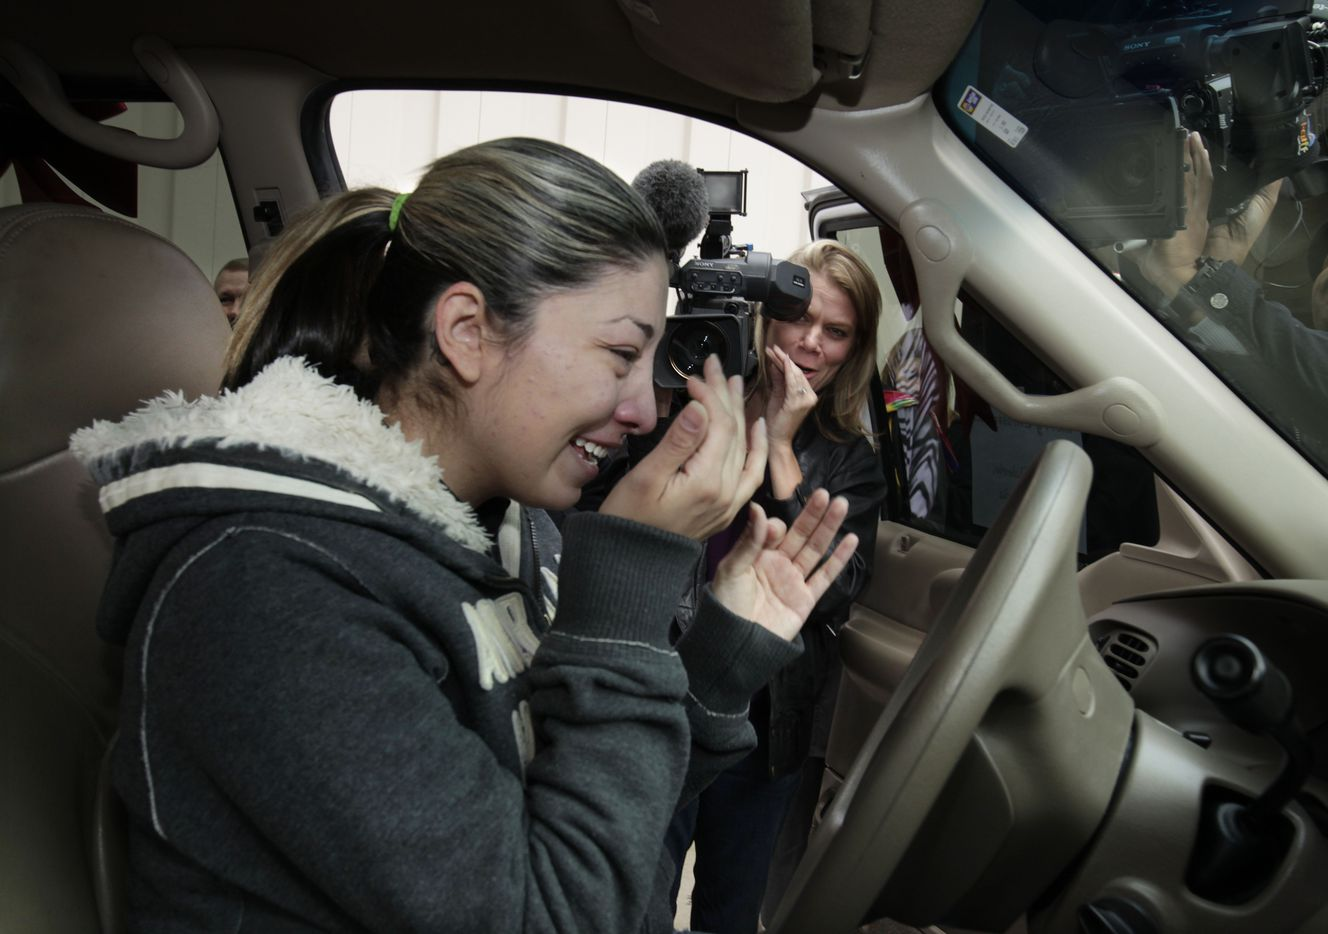 Rose Mares was overcome with emotion as she sat in the driver's seat of her Christmas gift for the first time at Frisco Family Services on Dec. 23, 2010. Mares and her two daughters had no transportation for some time after her old car, nicknamed Halie, was wrecked and would no longer run. Mares and her 7-year-old daughter Victoria Partain and 5-year-old daughter Valerie Partain turned to Frisco Family Services for food after a temporary layoff. Frisco Automotive & Transmission owner Charles Haley learned of the family's hardship and donated a used Ford Expedition with a new engine and free oil changes for a year.